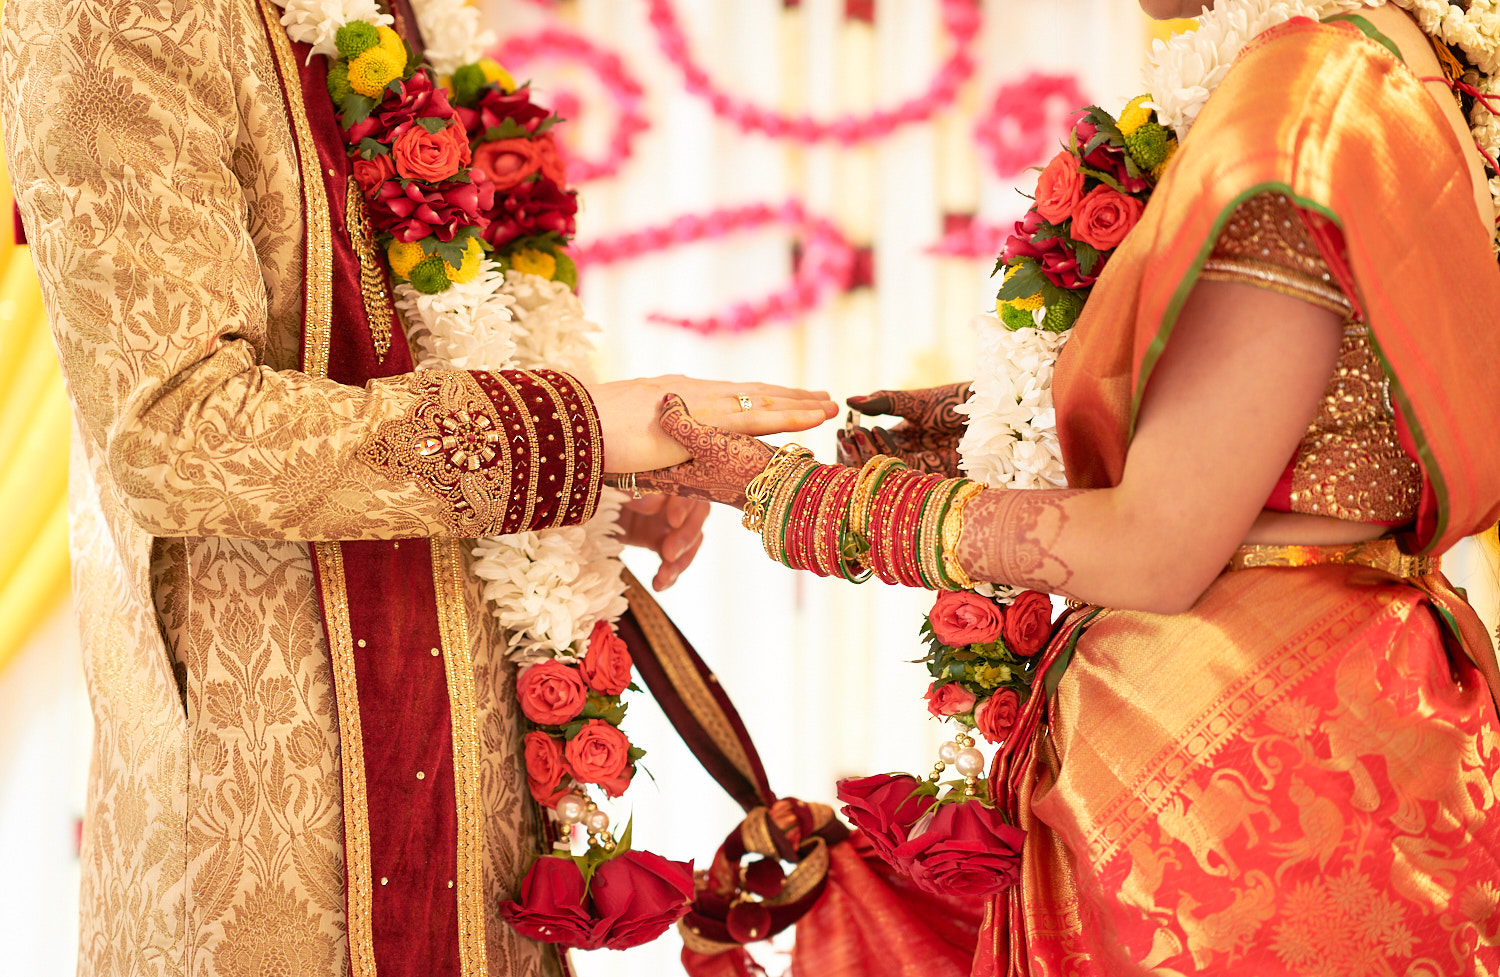 south-indian-wedding-ceremony-photography-by-afewgoodclicks-net-in-saratoga 255.jpg